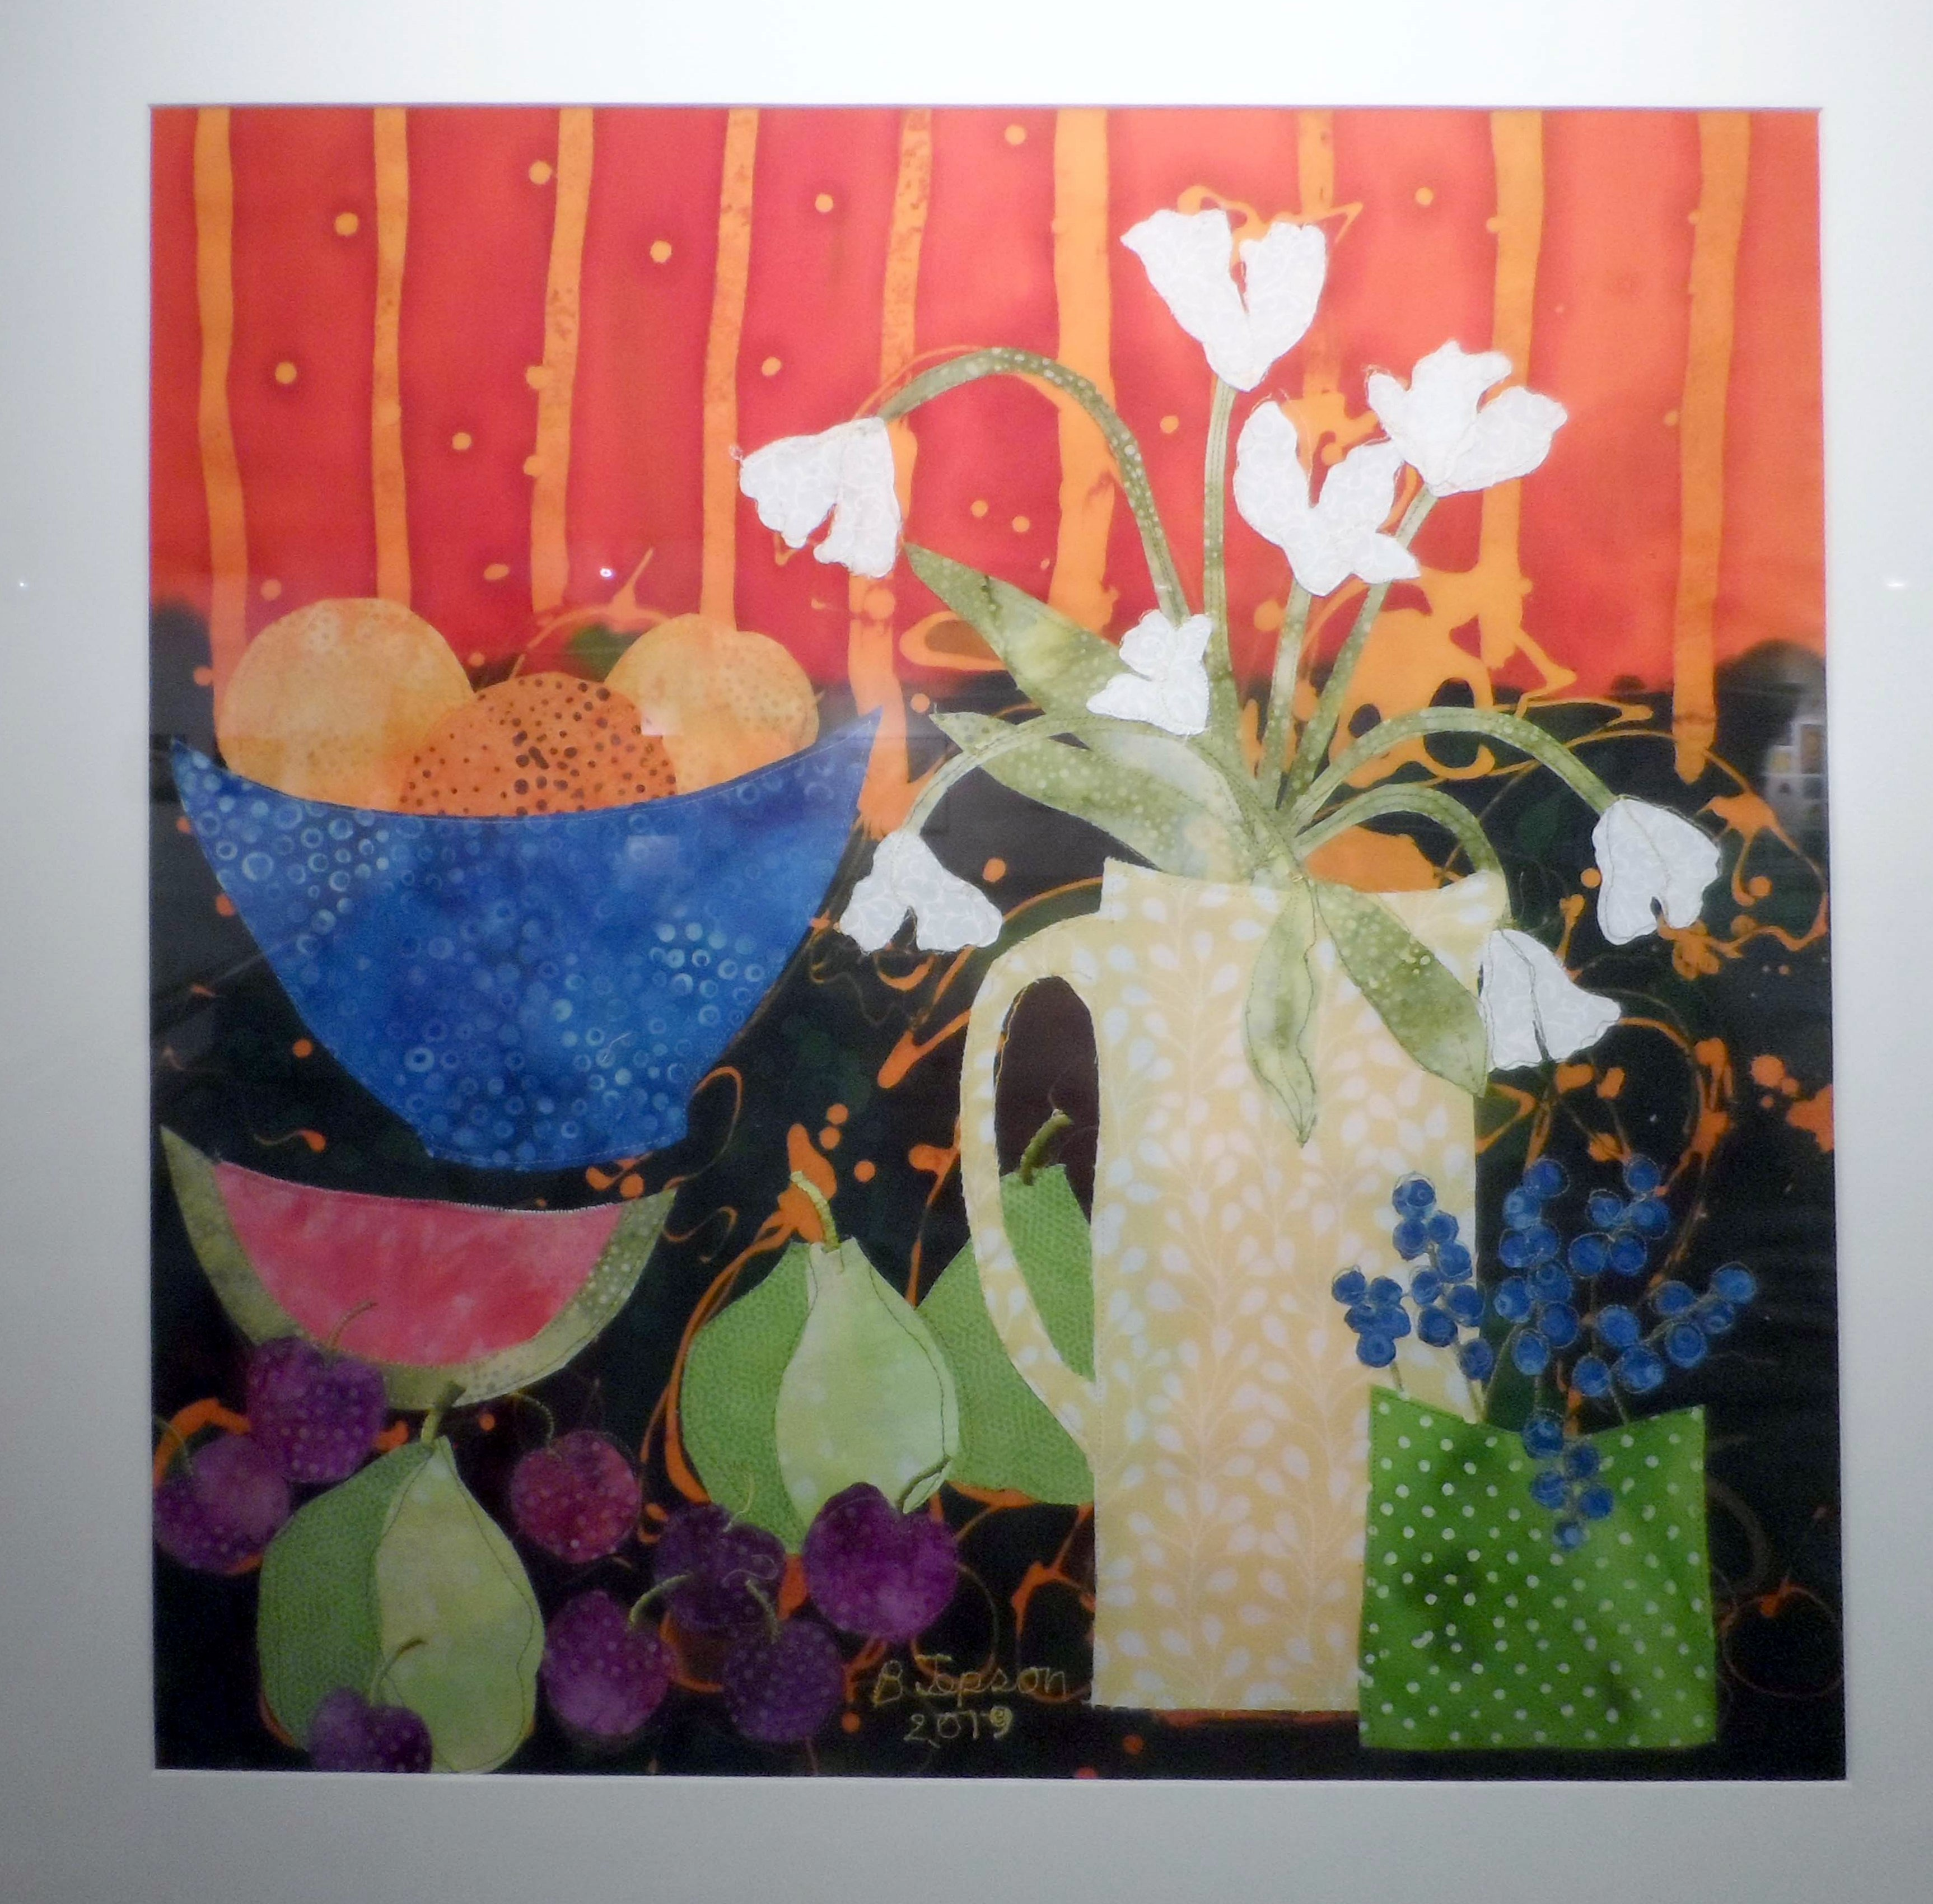 FLOWERS AND FRUIT by Barbara Jepson, batik and applique